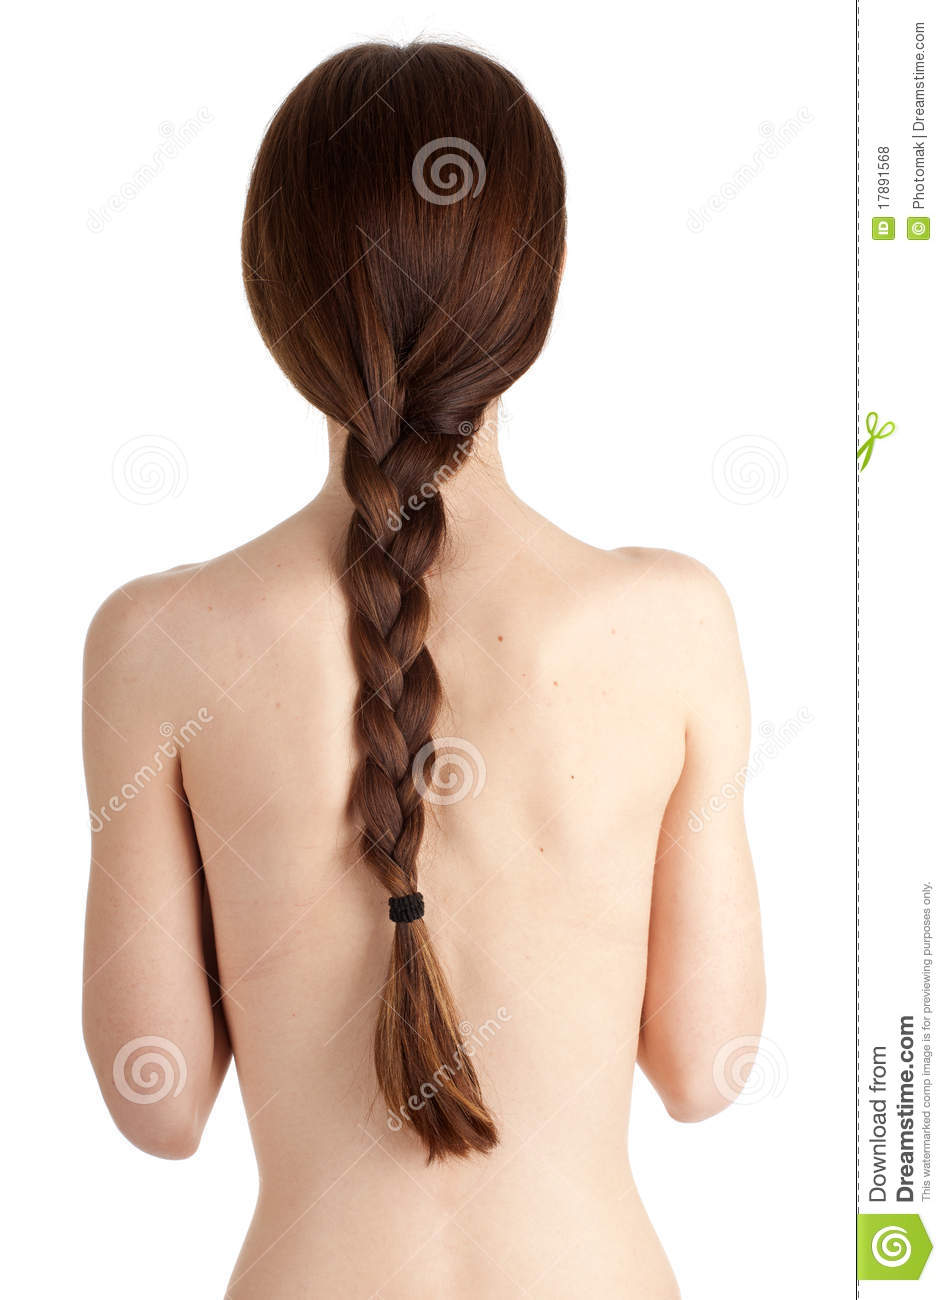 Very And Beautiful Naked Woman Stock Image - Image of face